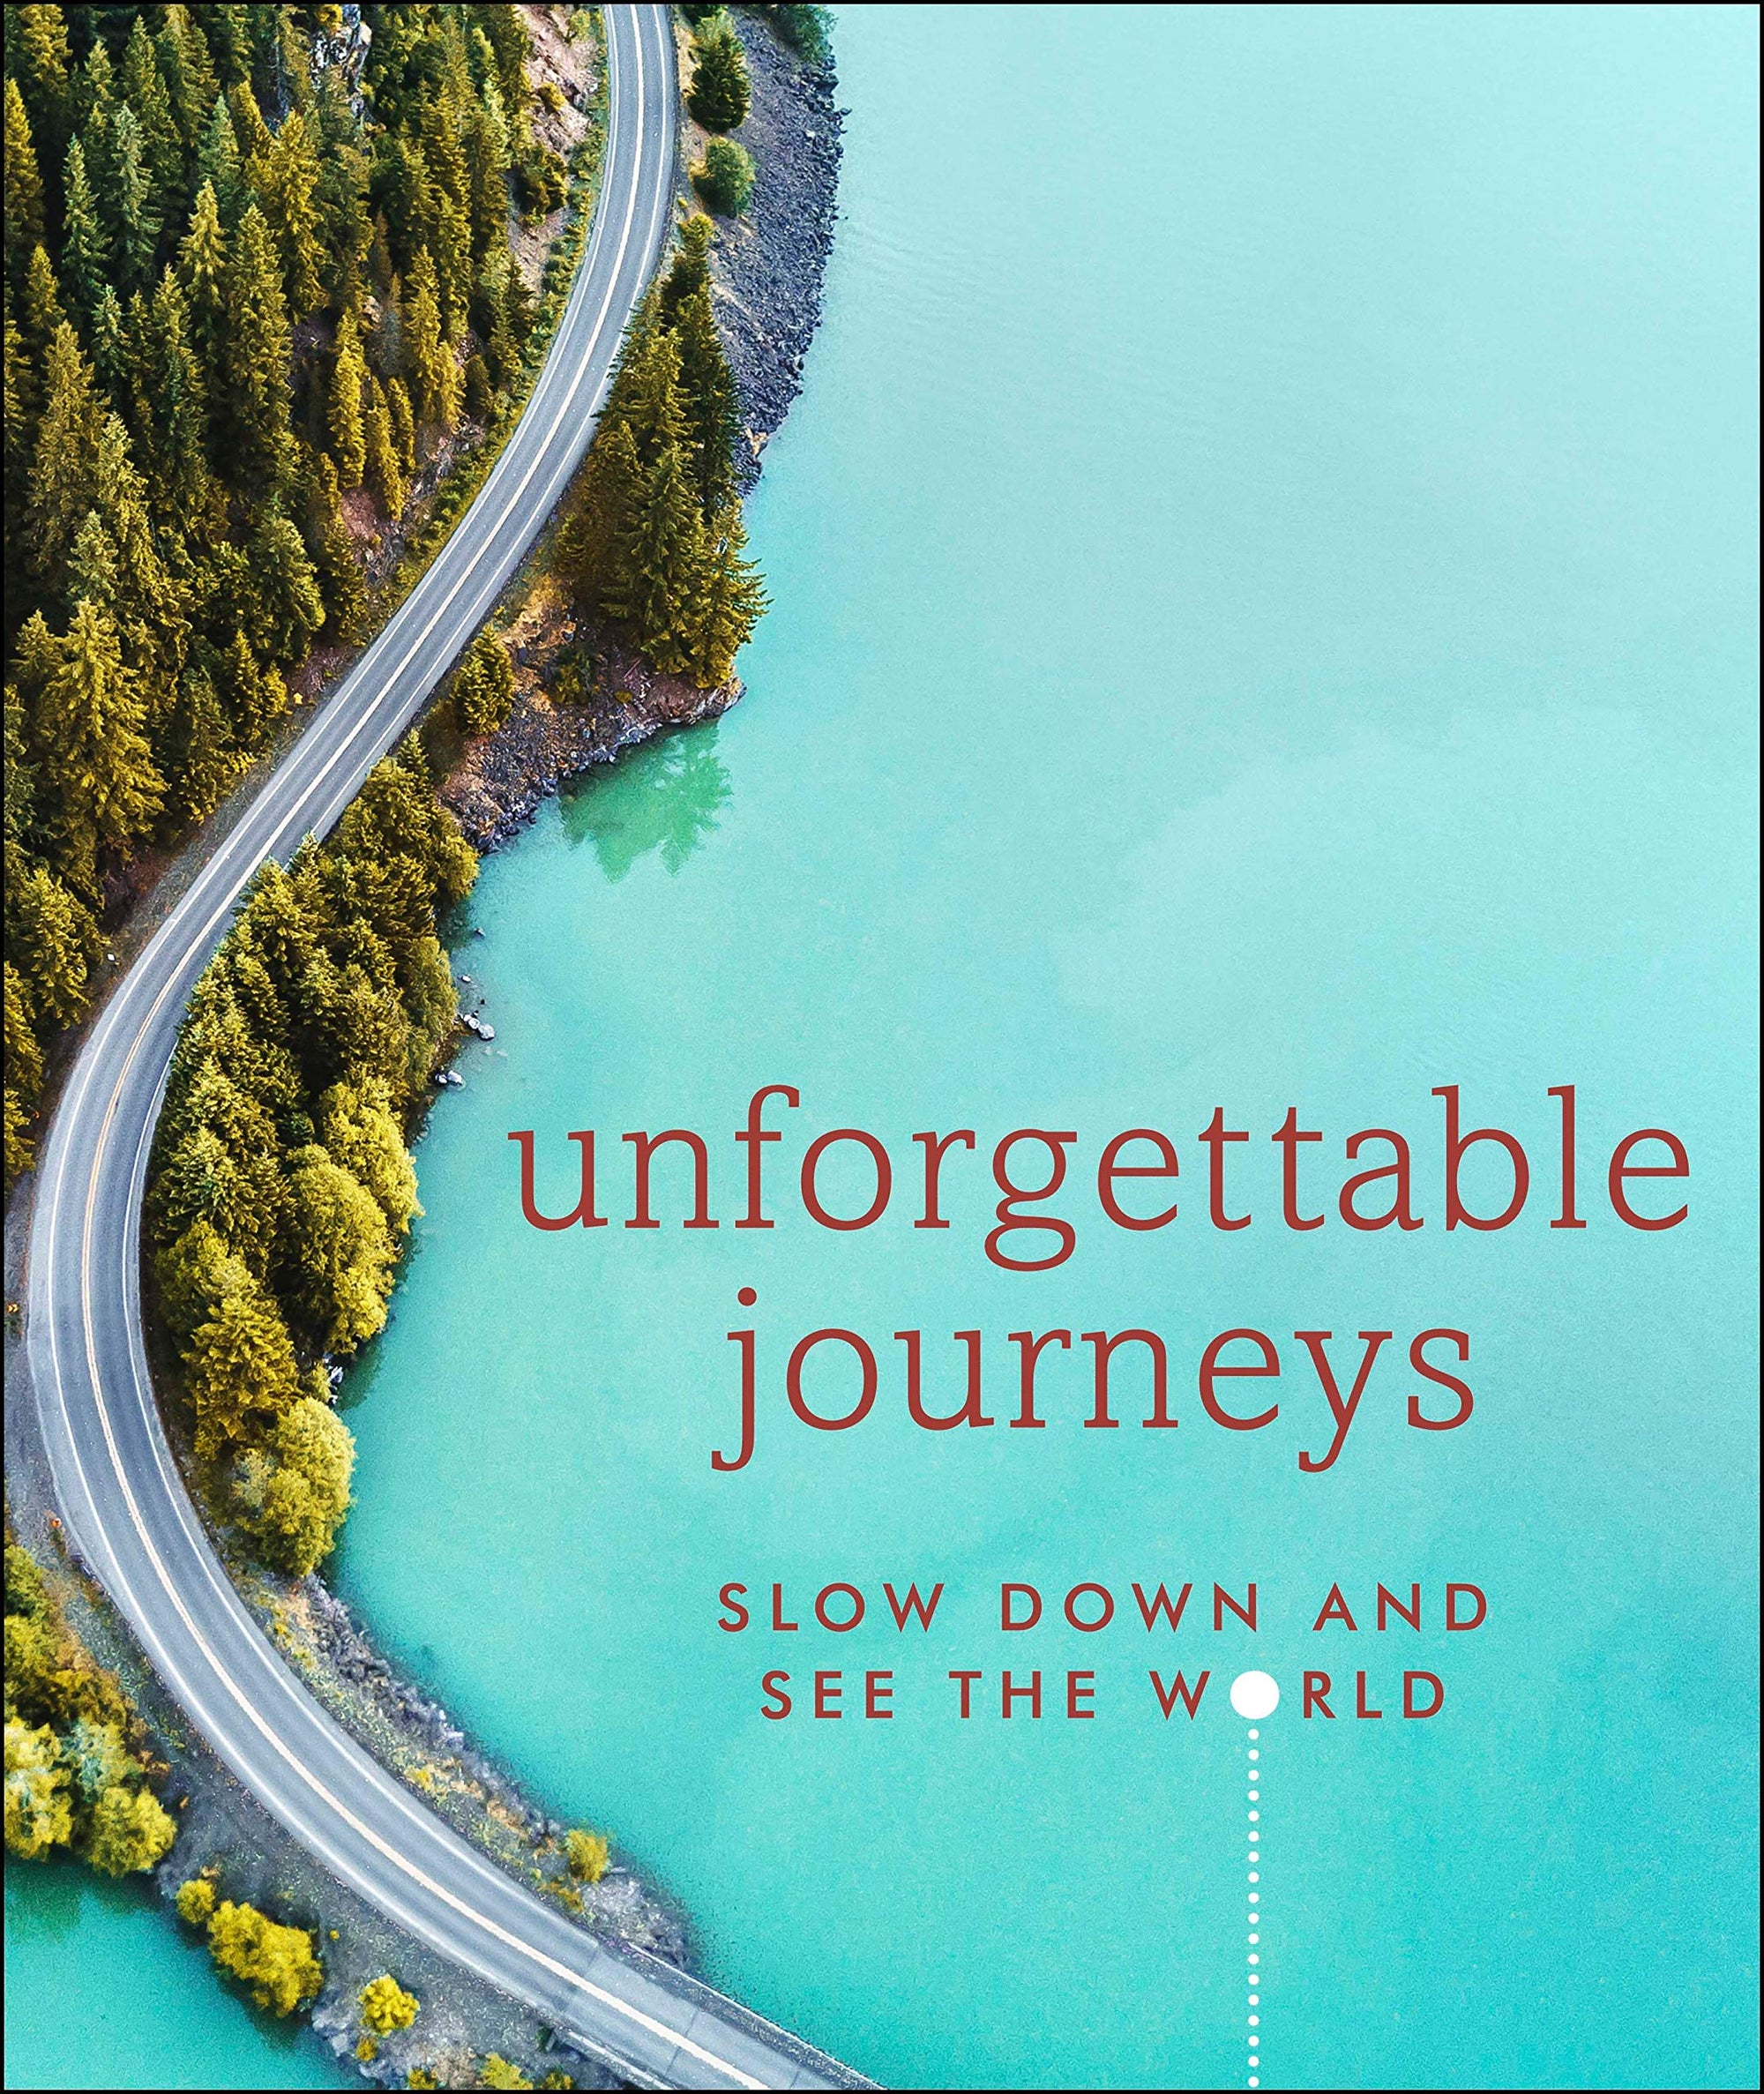 Book - Unforgettable Journeys: Slow down and see the world